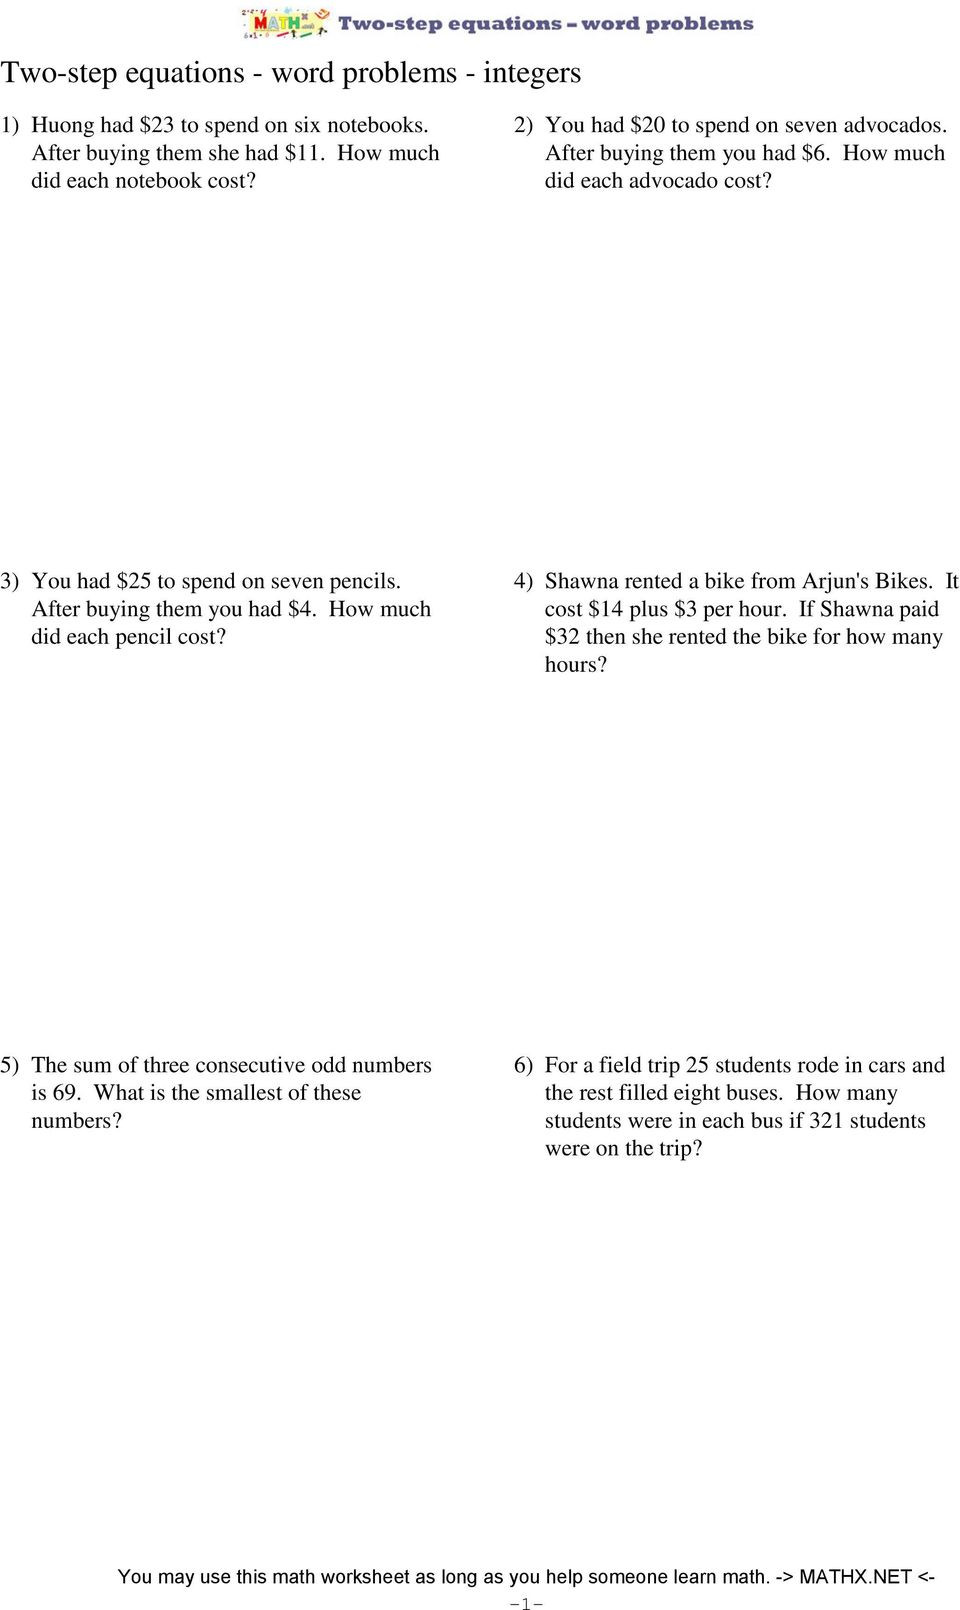 Two Step Word Problems Worksheet Two Step Equations Word Problems Integers Worksheet